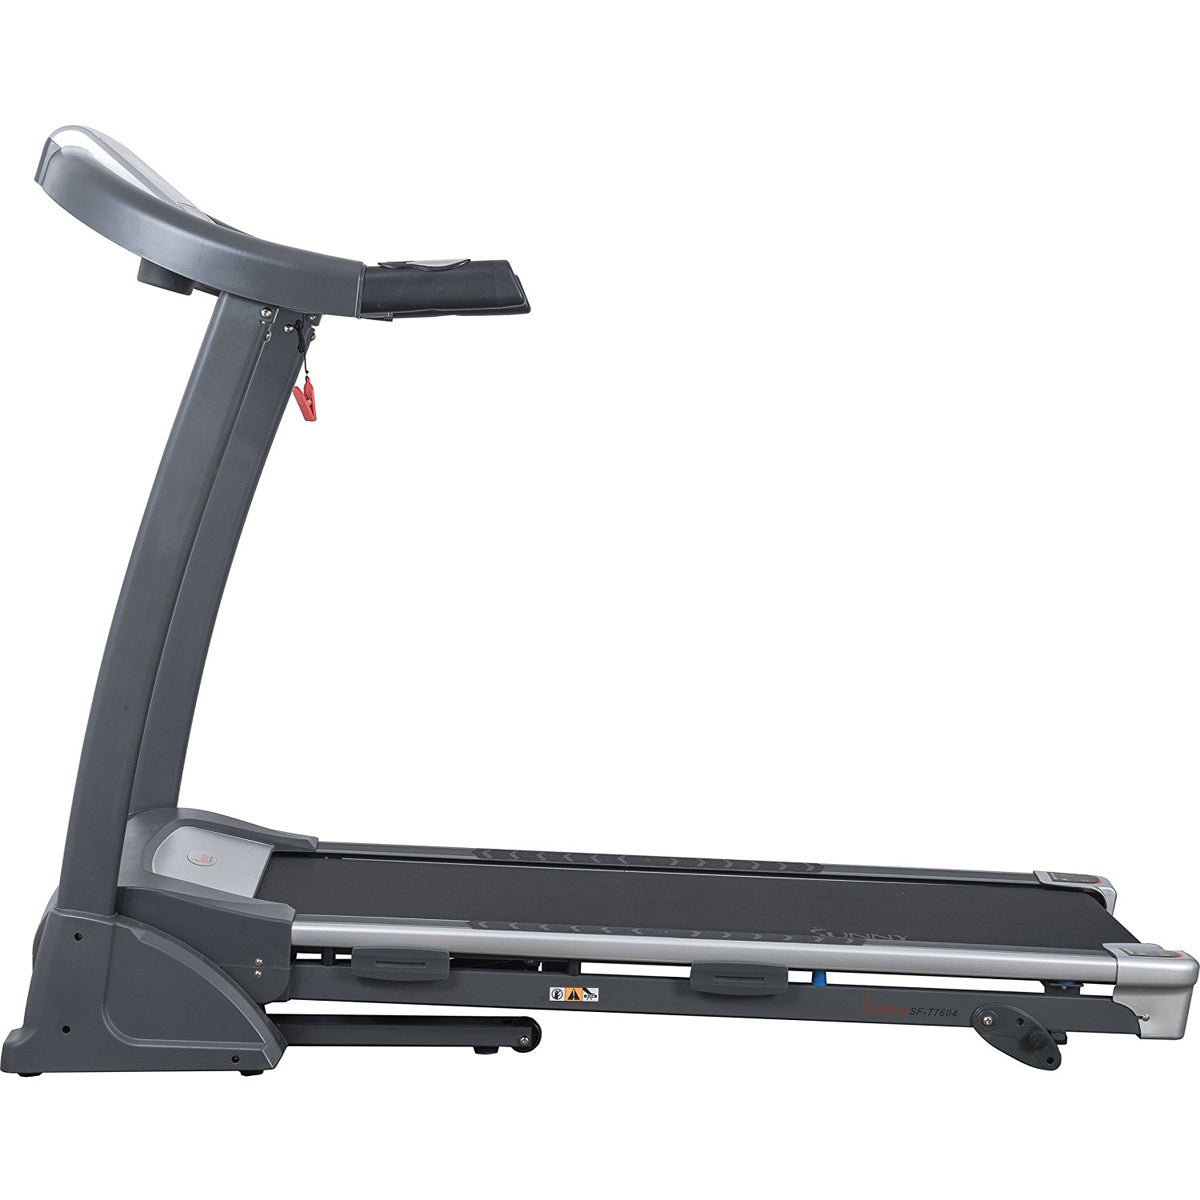 sunny-health-fitness-treadmills-2.5-hp-motorized-treadmill-15-user-programs-SF-T7604-heavy-duty